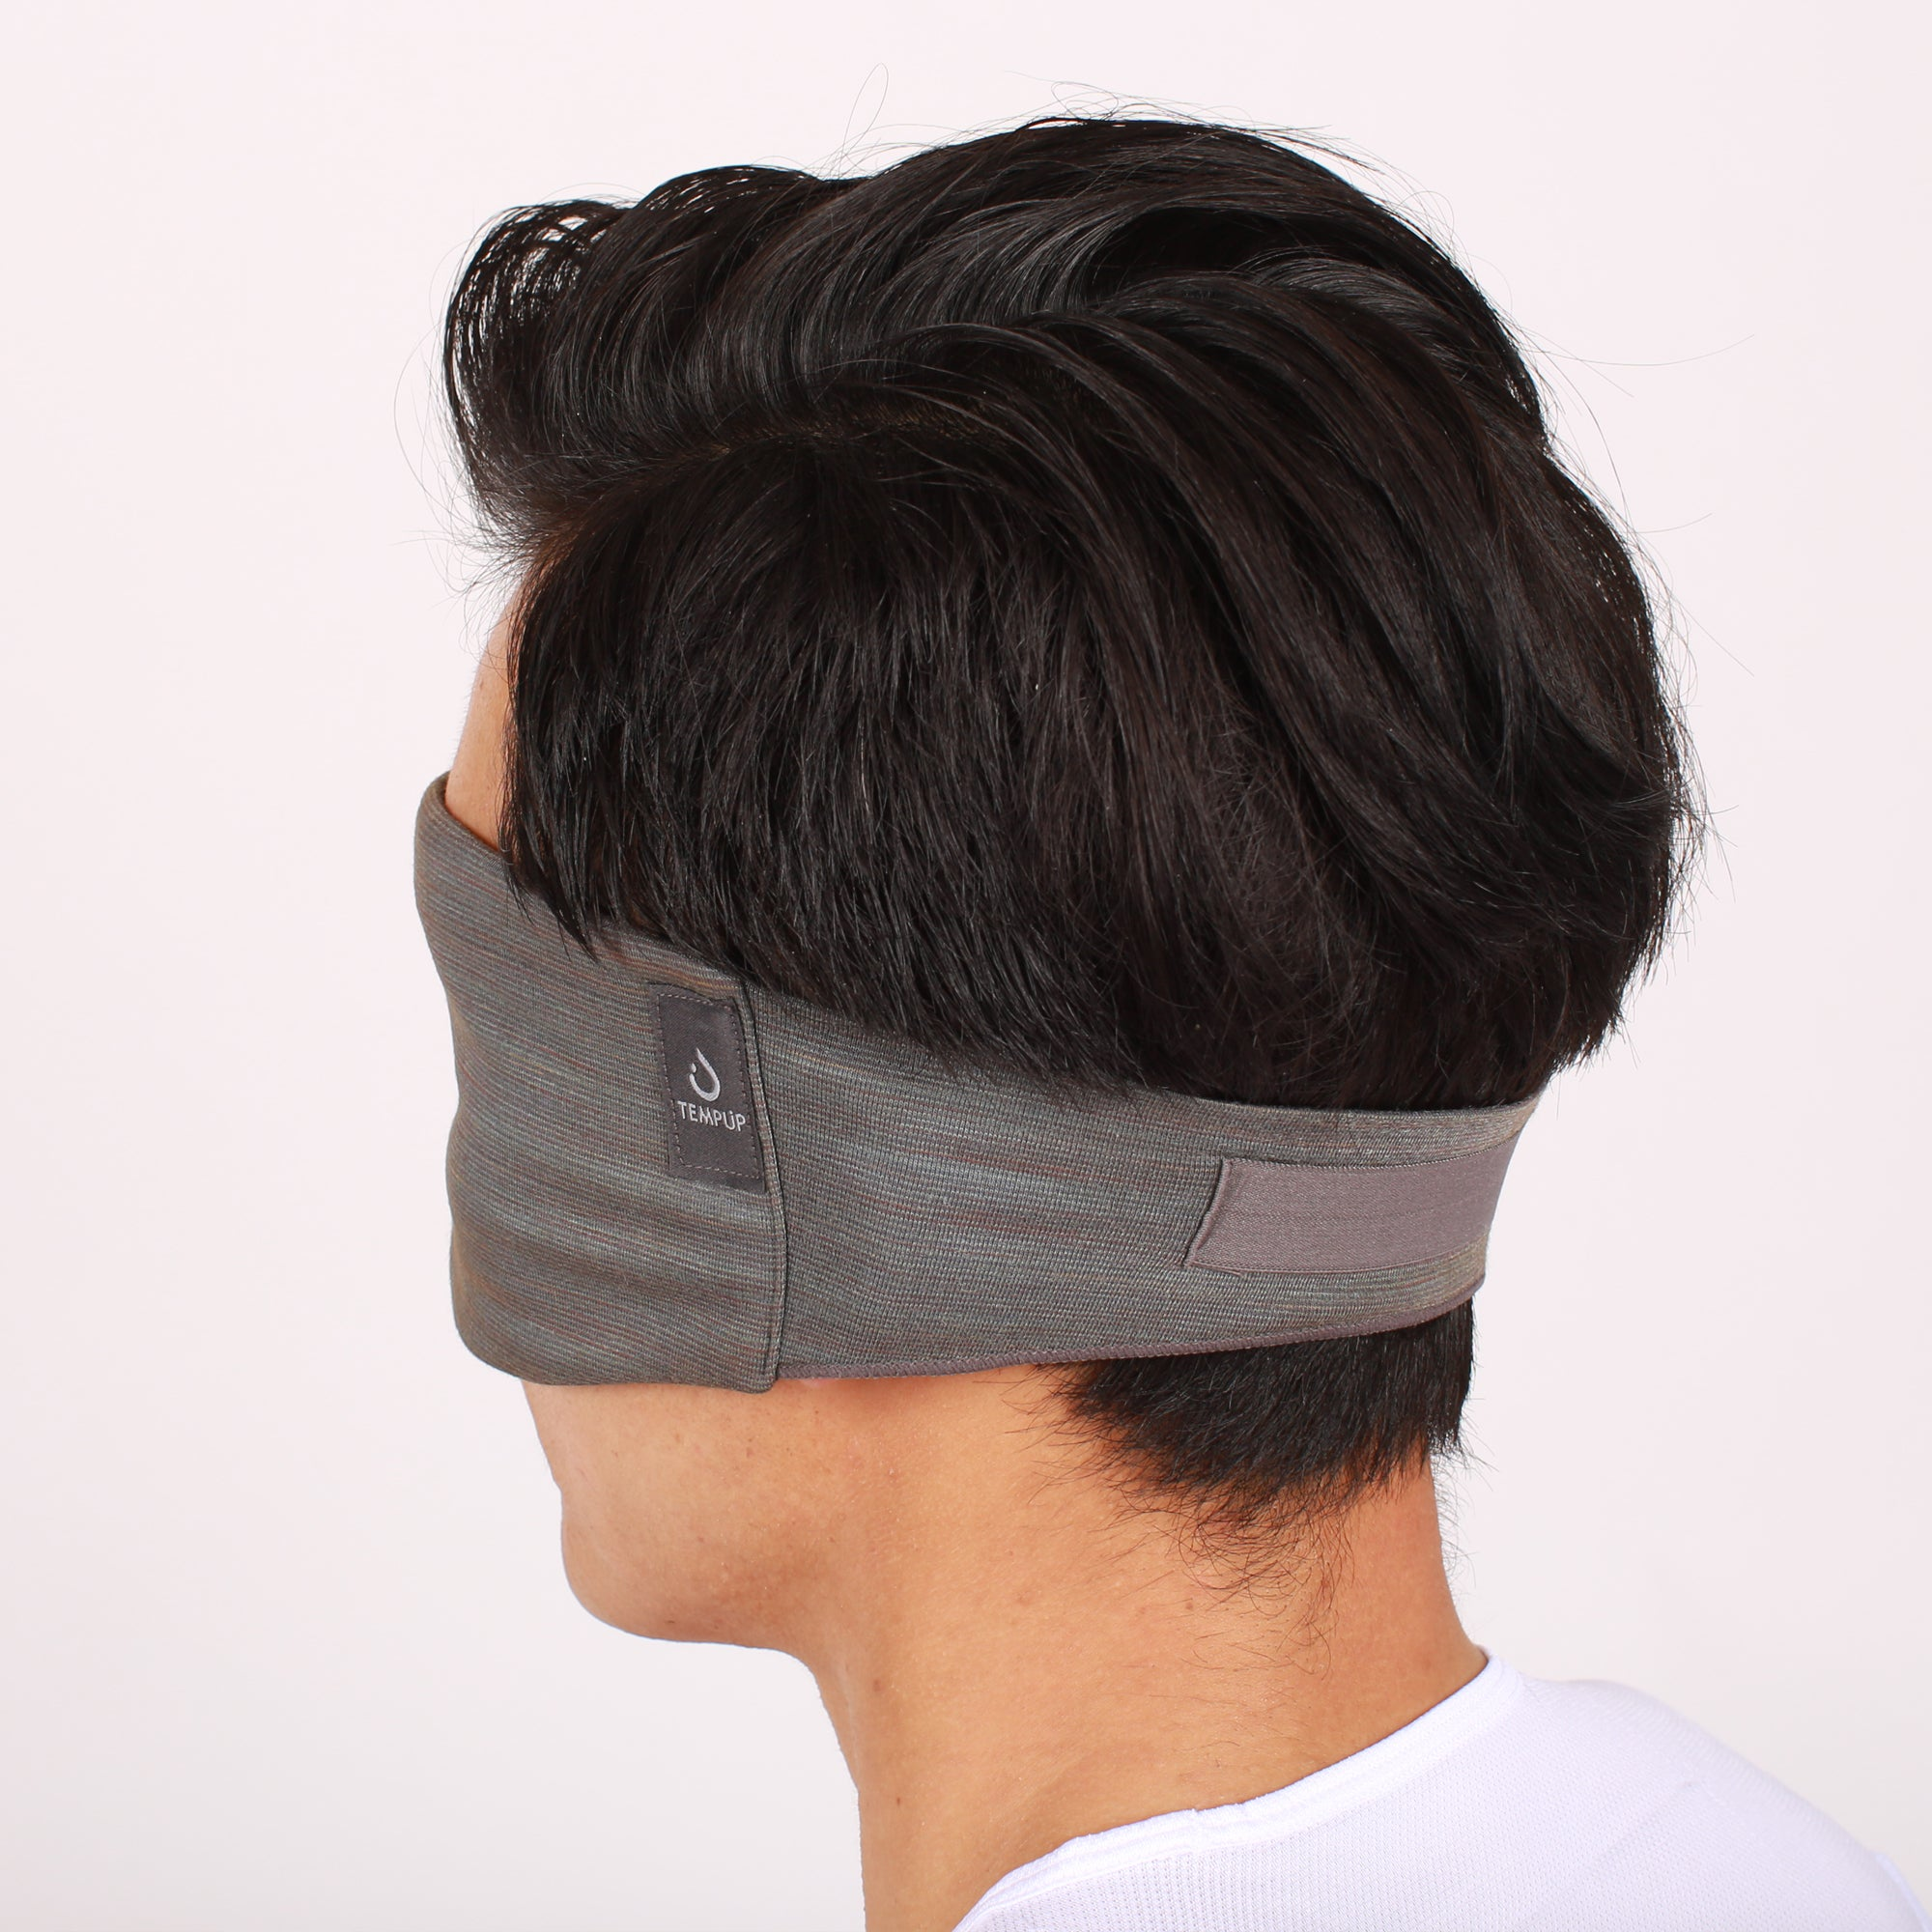 TEMPUP Eye Band Sleep Mask, Self Recovery Wear, Headache Helper, Helps Full Night's Sleep